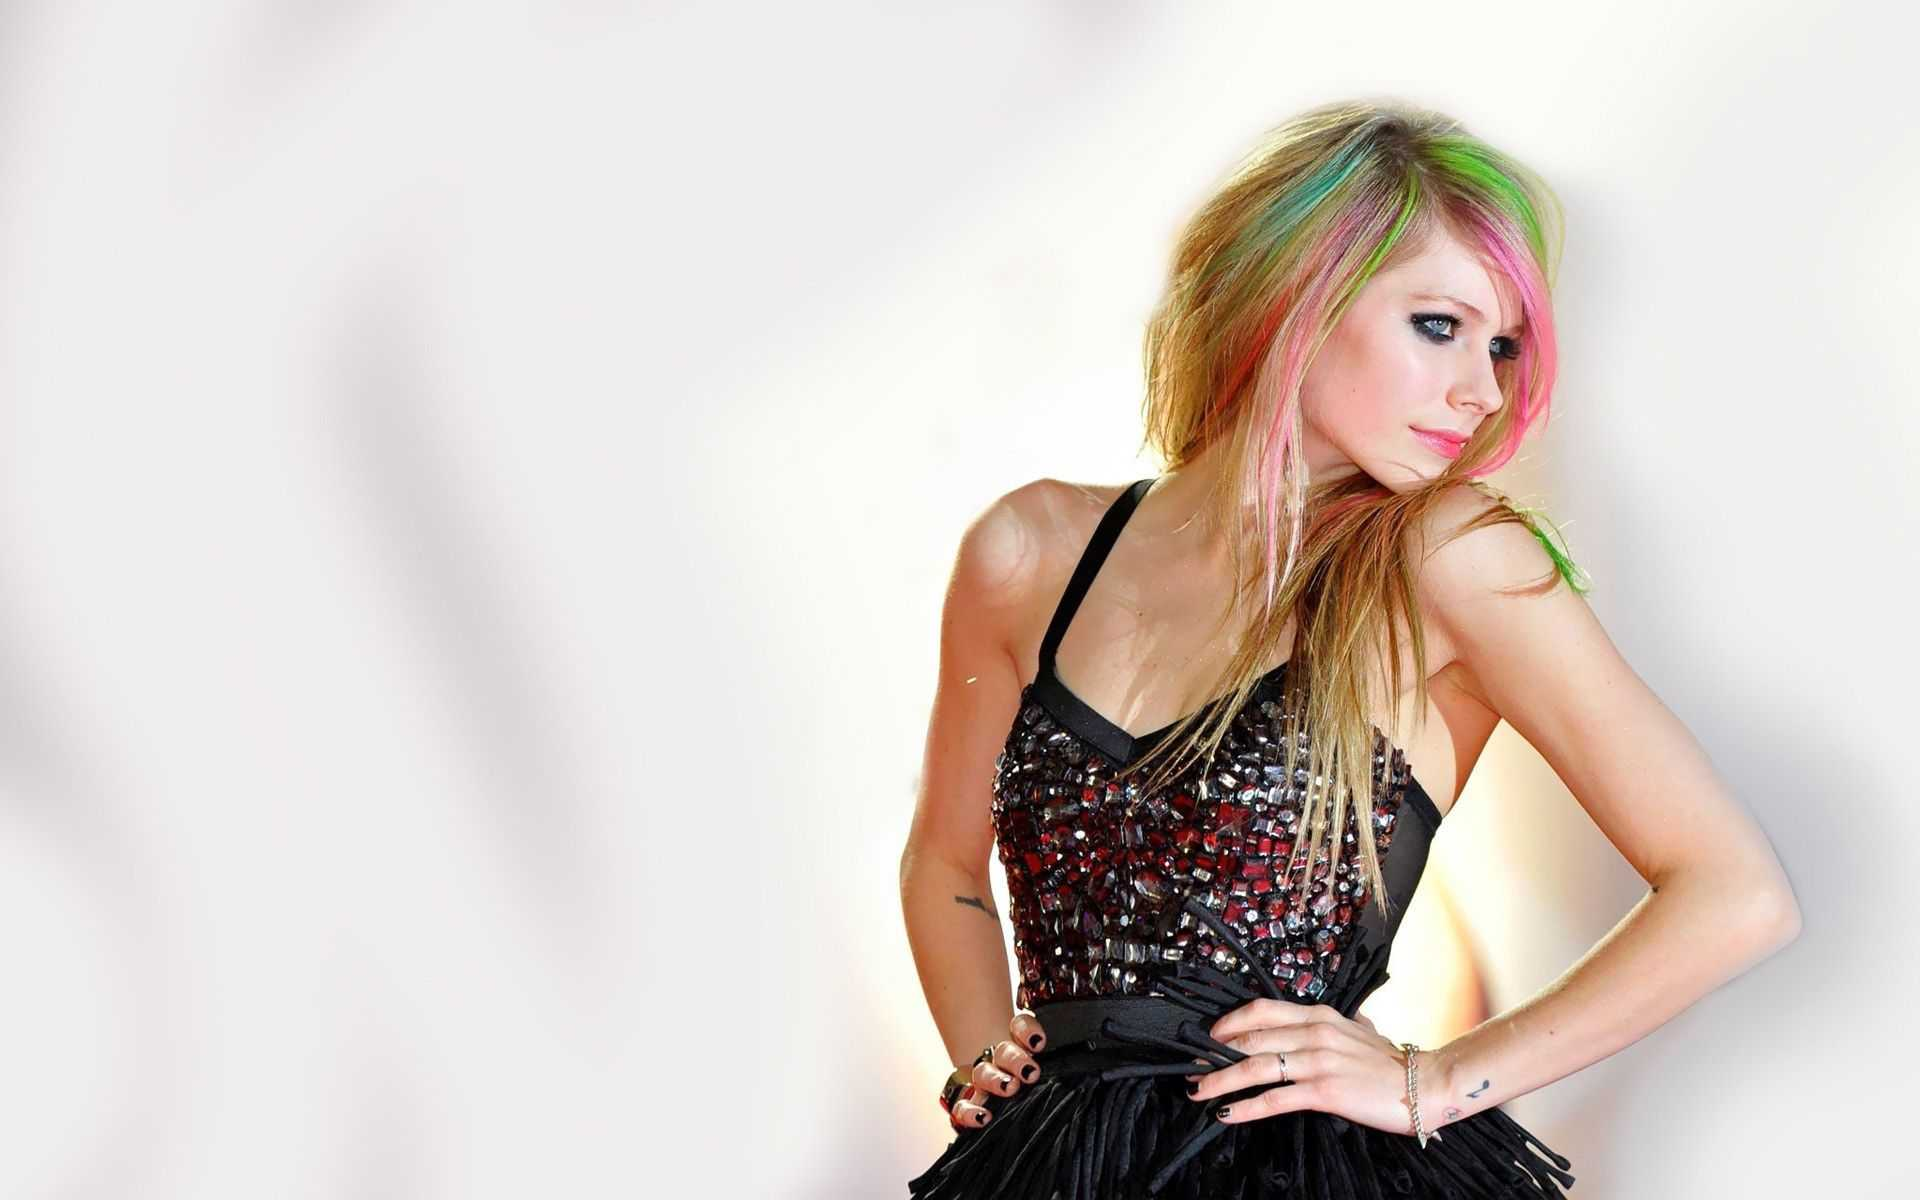 avril lavigne wallpaper 50105 1920x1200 px ~ hdwallsource